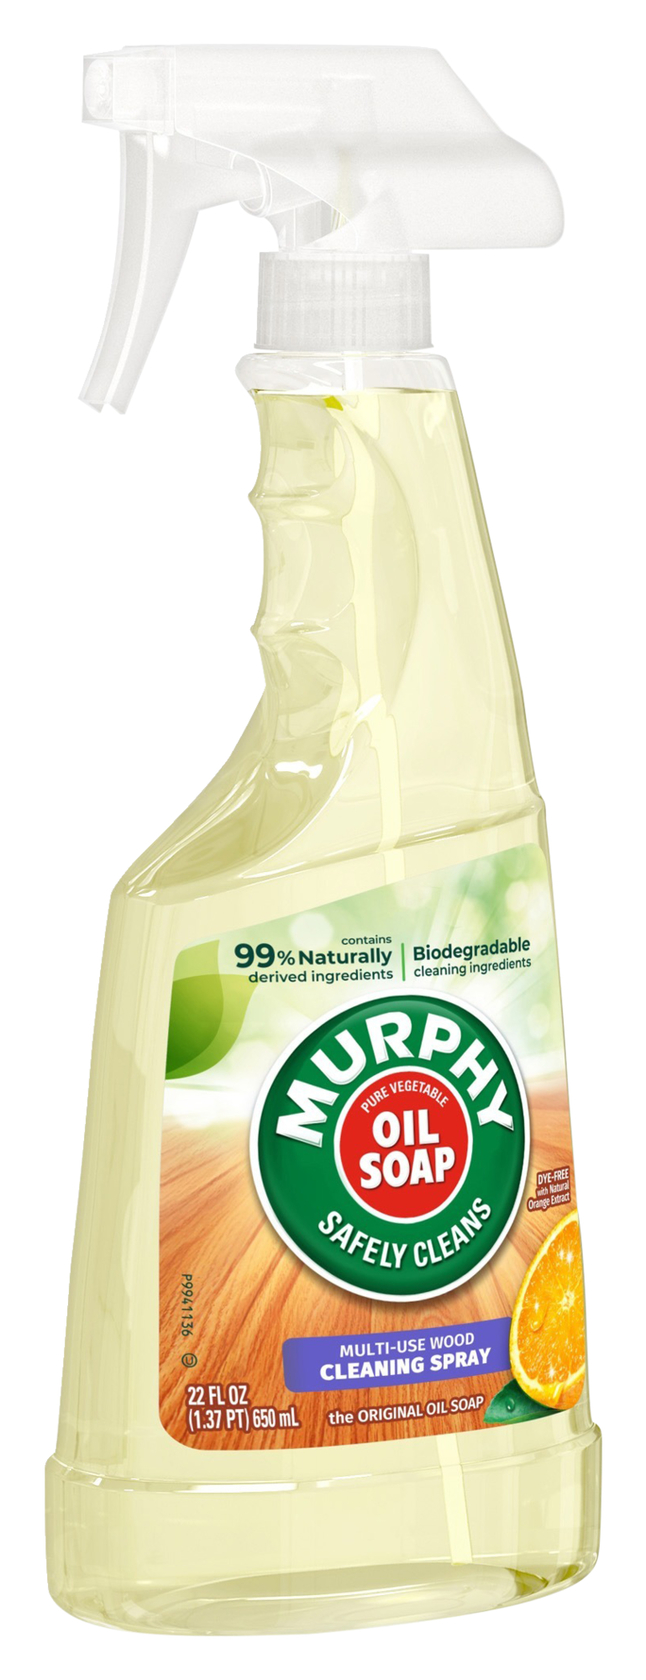 Image for Murphy Oil Soap Wood Cleaner, Fresh Orange Scent, 22 Ounces, Case of 9 from School Specialty